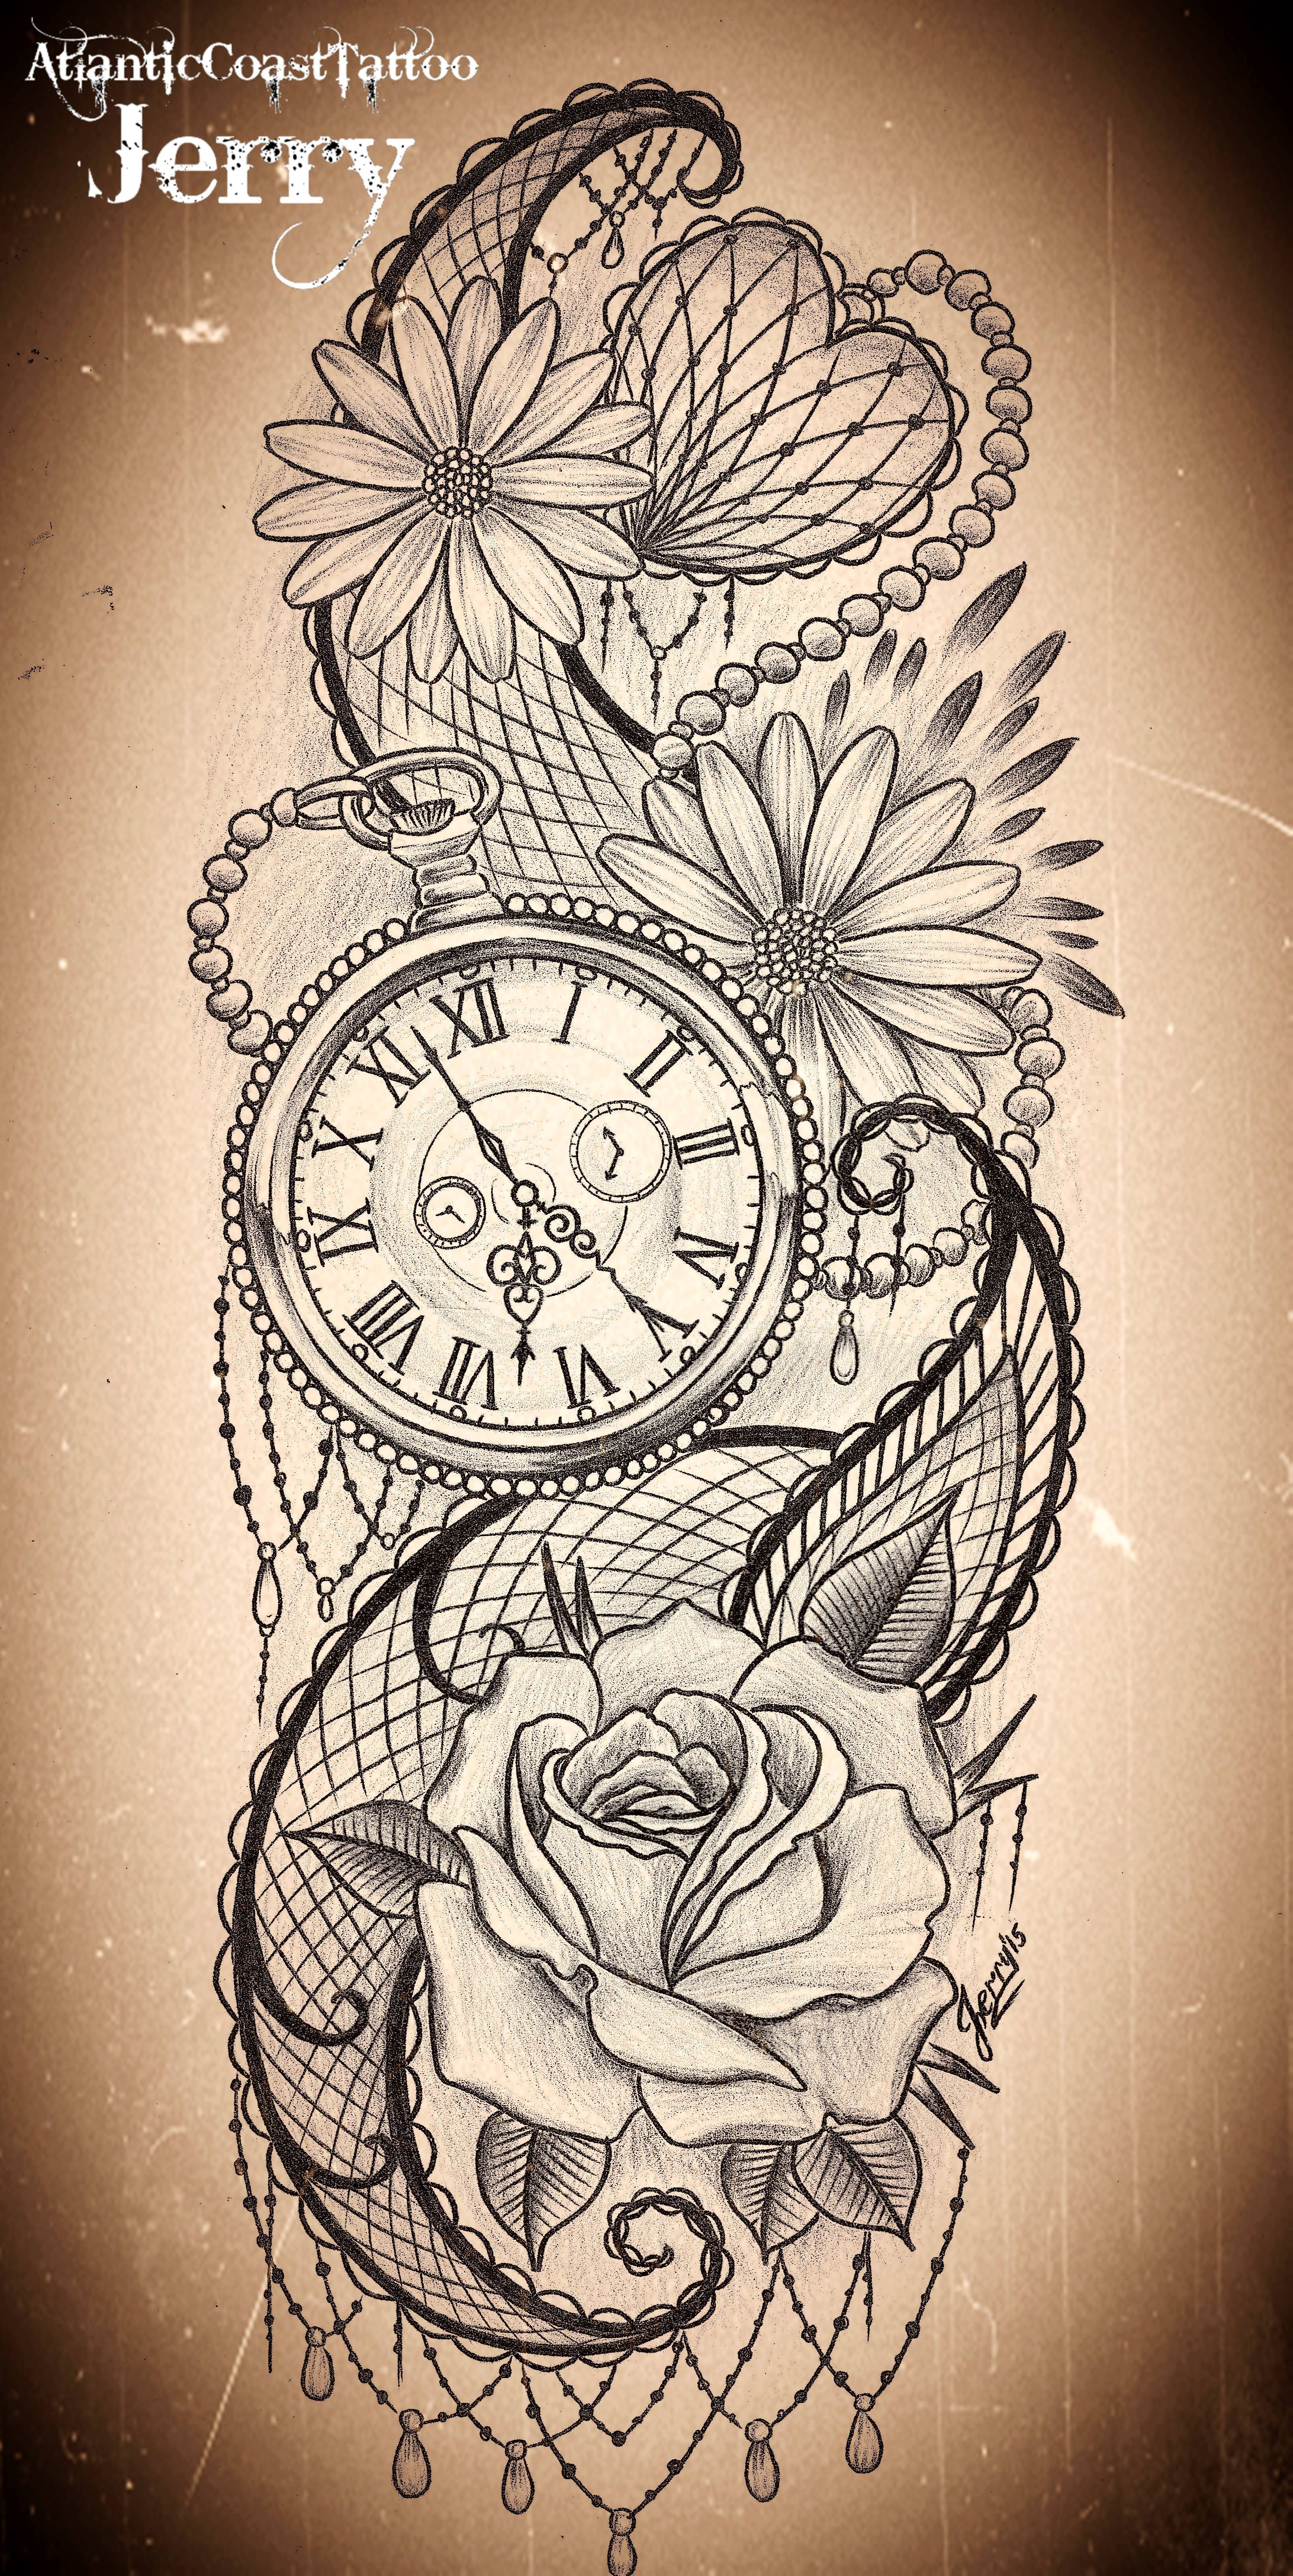 Pocket Watch And Flowers Tattoo Design Idea Mendi And Rose Daisy Tattoos Picture Tattoos Army Tattoos